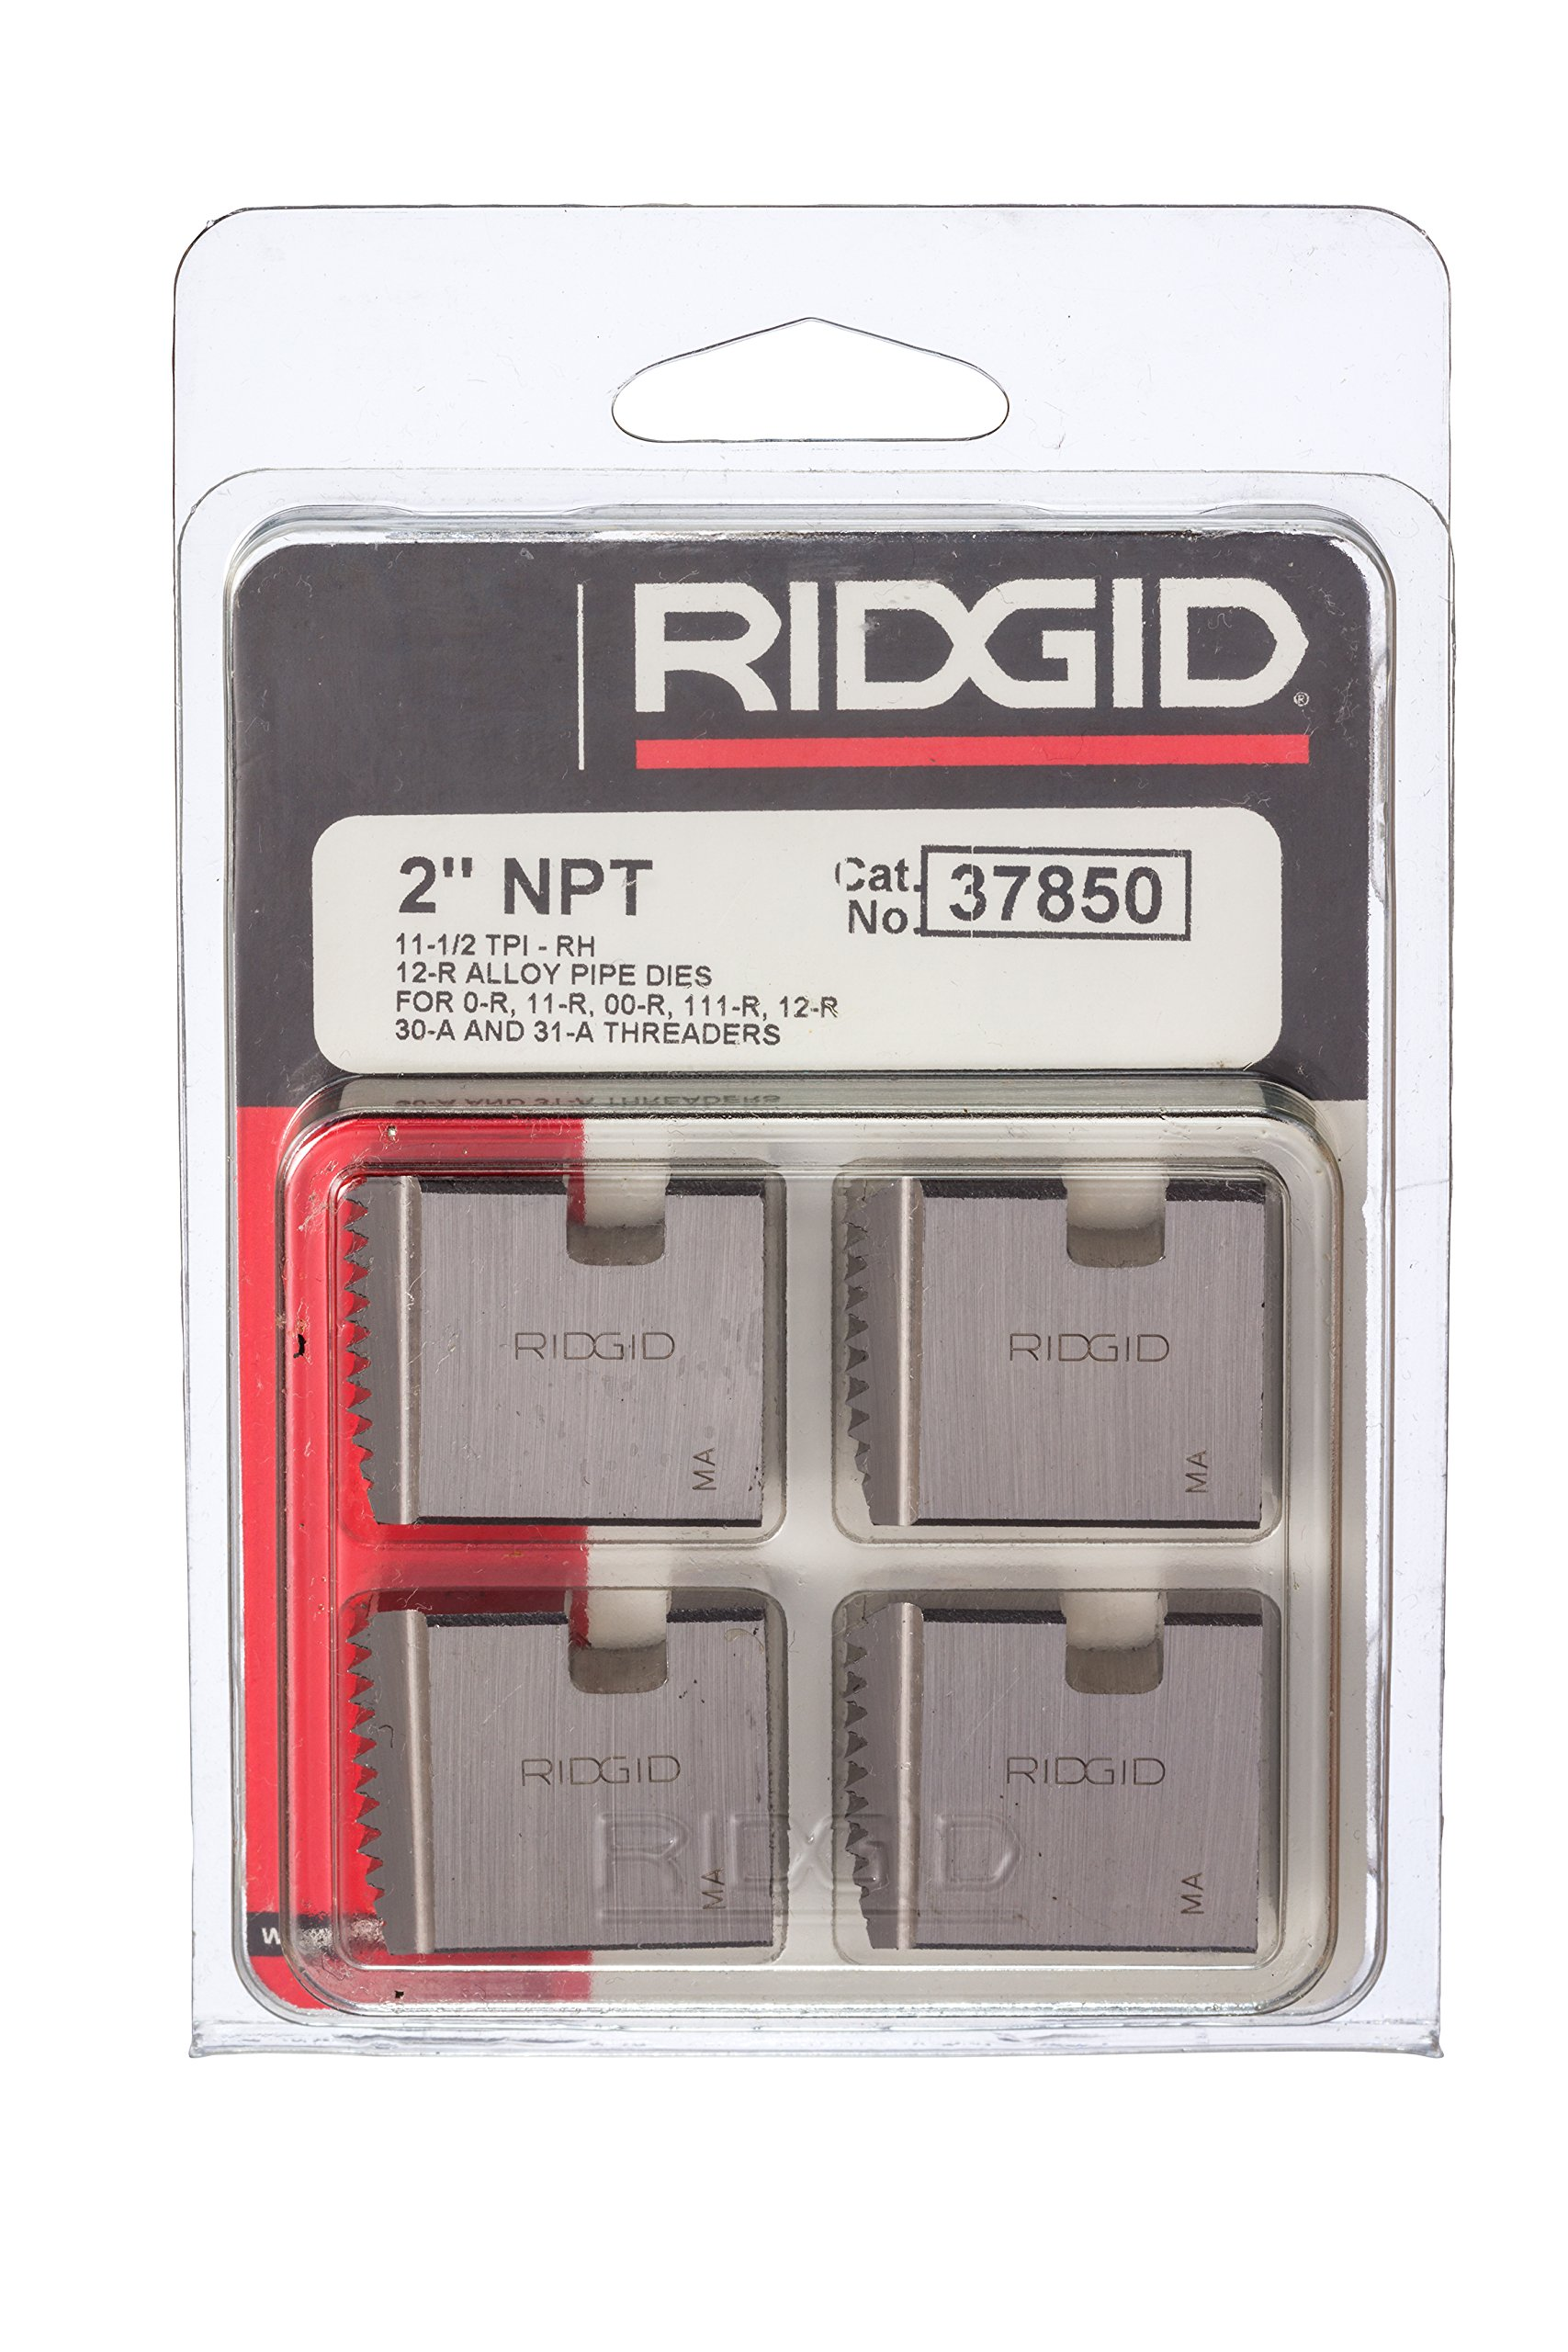 RIDGID 37850 Manual Threader Pipe Dies, Right-Handed Alloy NPT Pipe Dies with Nominal Pipe Size of 2-Inches for Ratchet Threaders or 3-Way Pipe Threaders